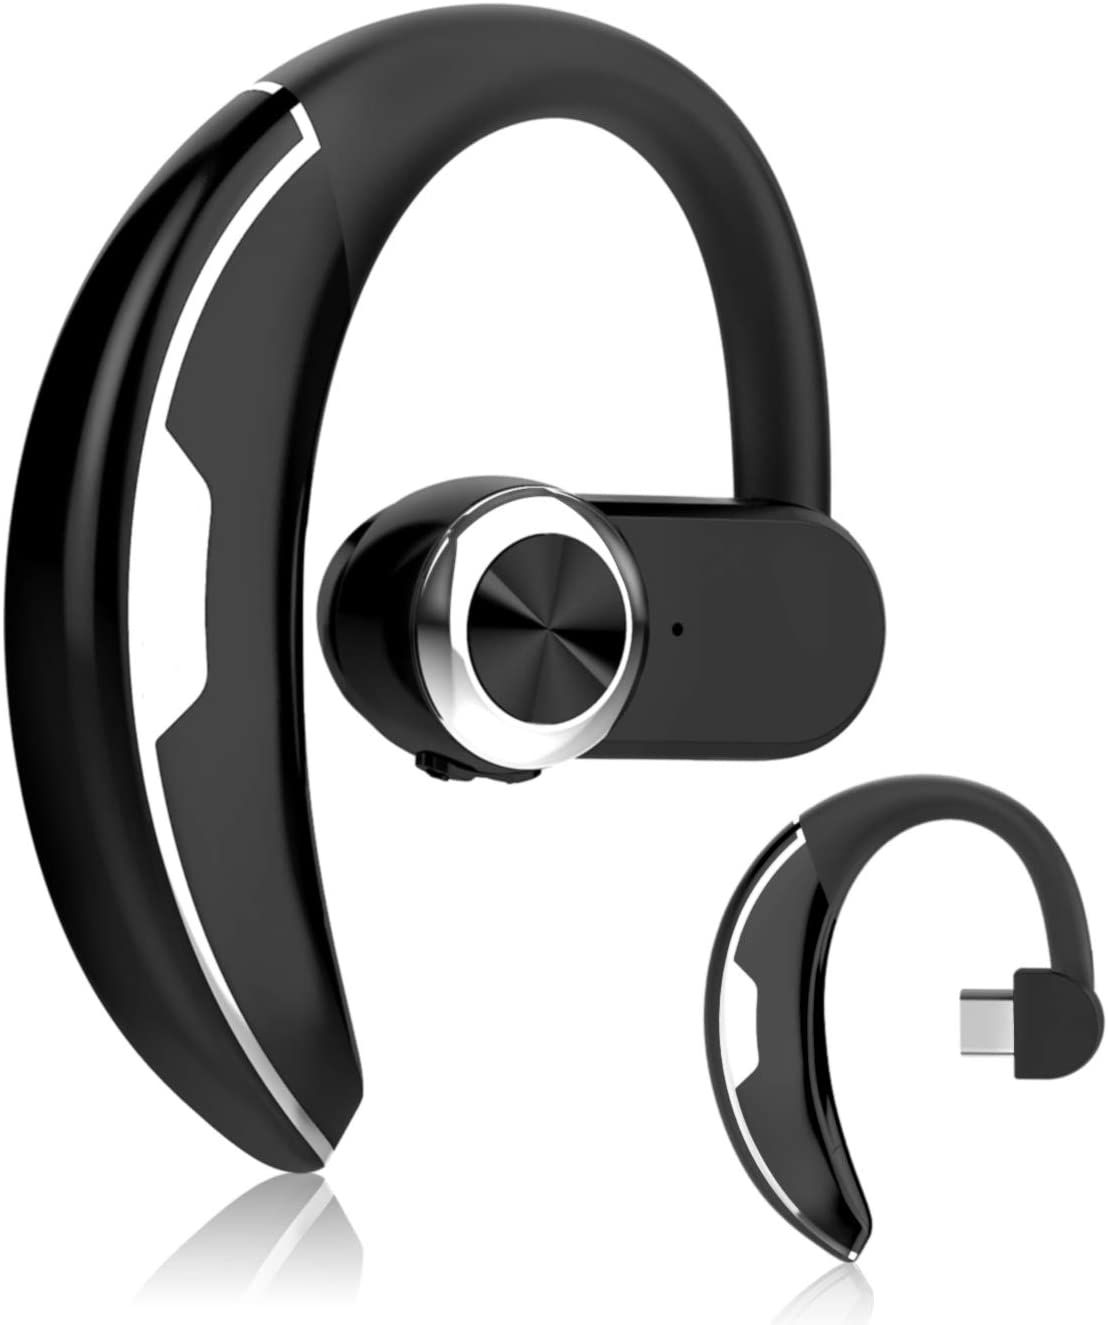 Dual Mic Noise Canceling 16H Talktime AptX-HD Bluetooth Earpiece Compatible with iPhone Android GoNovate C20 Bluetooth Headset 5.0 for Driving//Business//Office